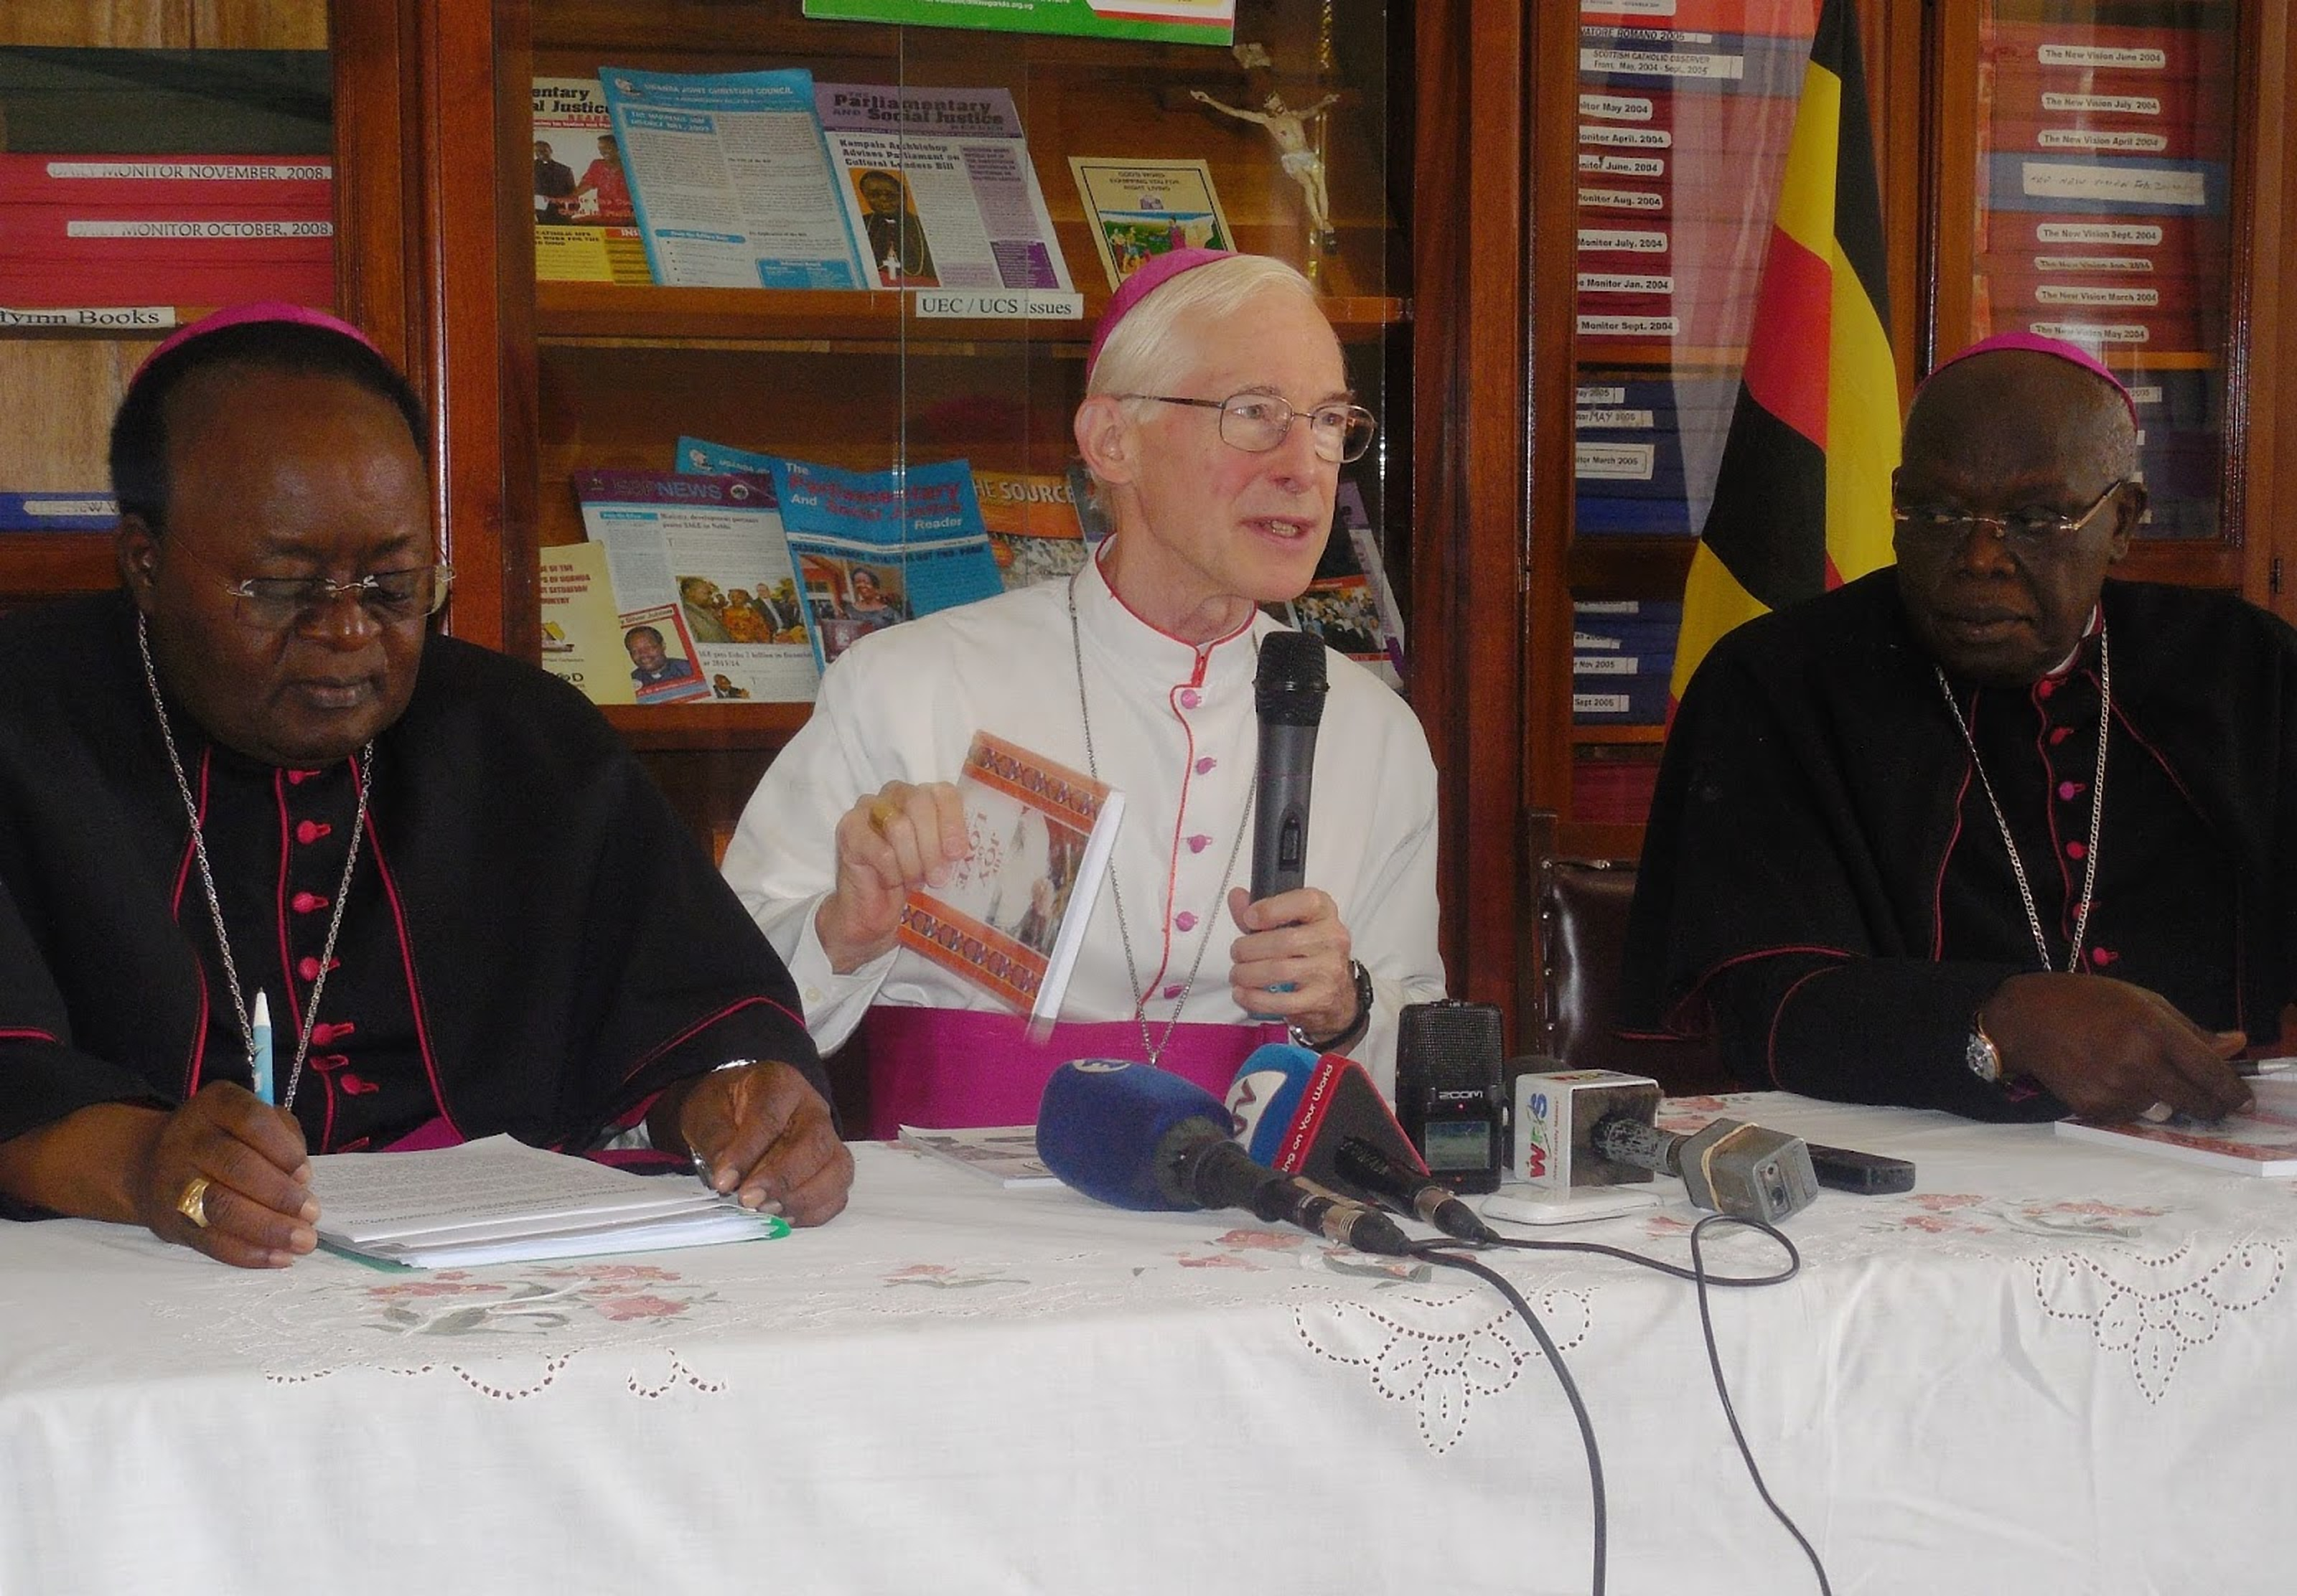 H.E. Most Rev. Michael August Blume, the Former Apostolic Nunci  to Uganda (center) shows to the press a  copy of a booklet  of the Amoris Laetitia. He is flanked by the Chairman  of the Uganda Episcopal Conference and Archbishop of Gulu,  Most Rev. John Baptist Odama (right) and the Archbishop of  Kampala, Most Rev. Cyprian Kizito Lwanga (left)